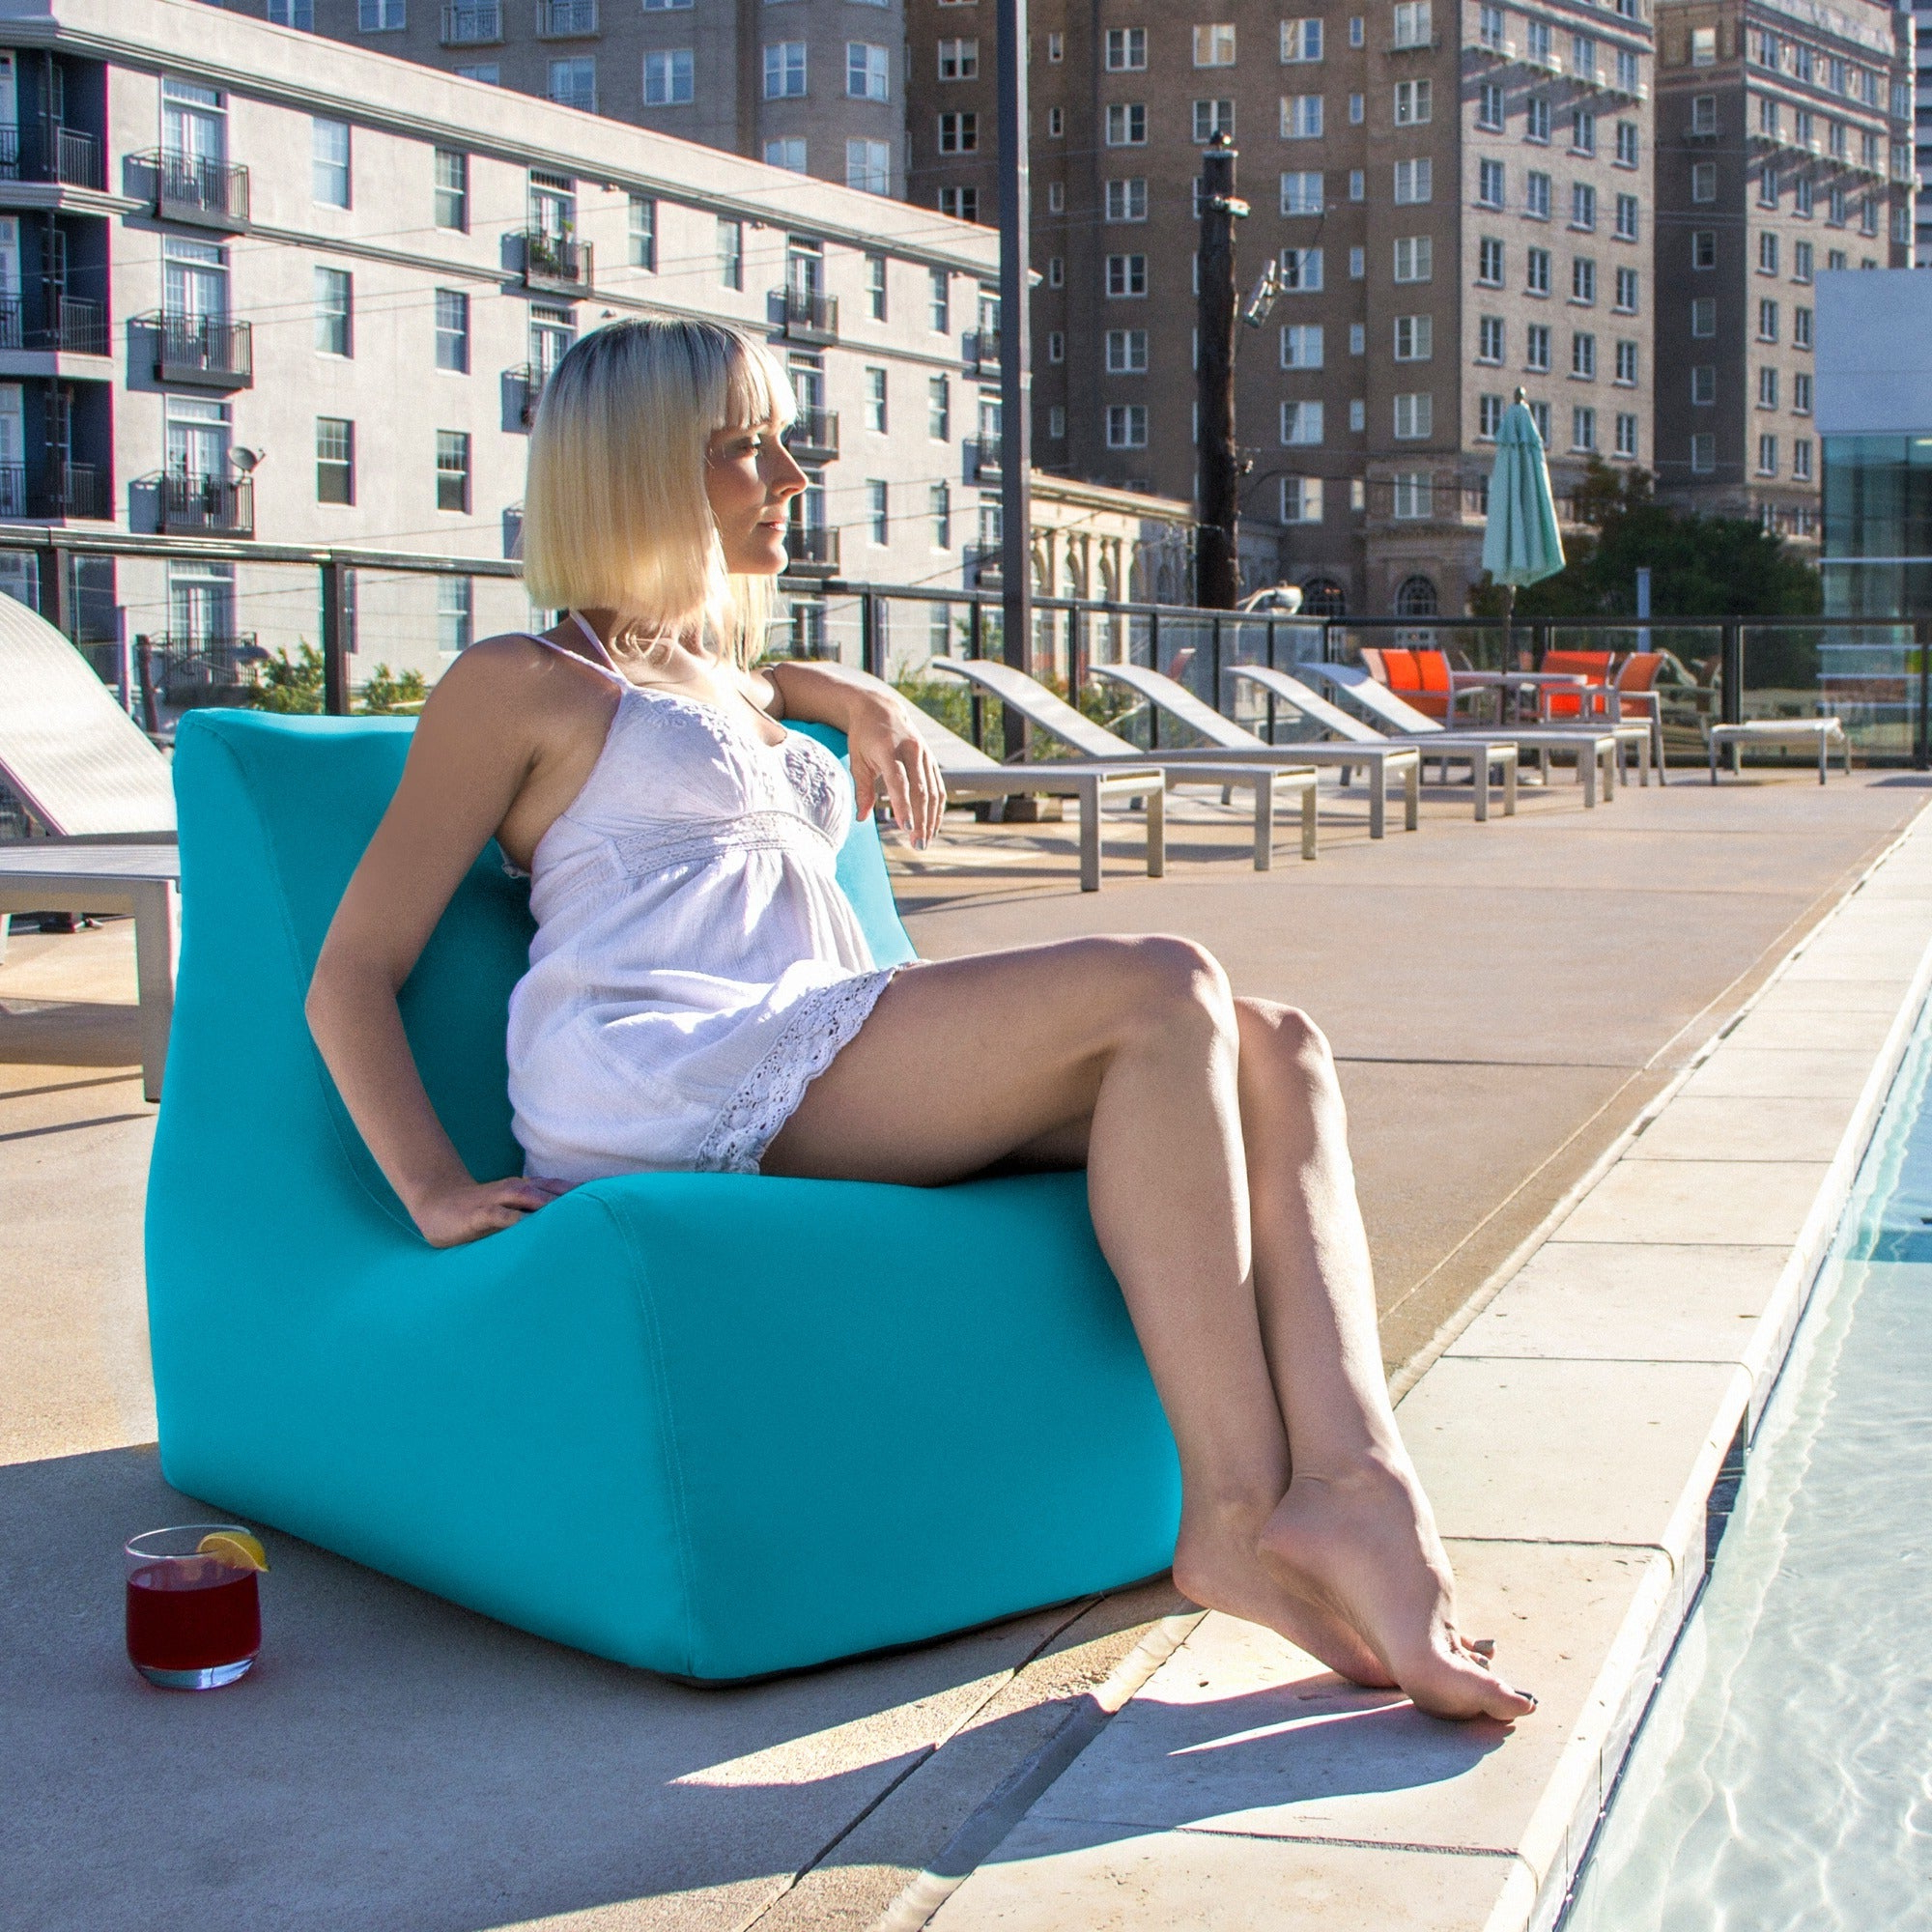 Jaxx Ponce Outdoor Bean Bag Patio Chairs Throughout Most Recently Released Jaxx Ponce Outdoor Bean Bag Patio Chair (View 21 of 25)